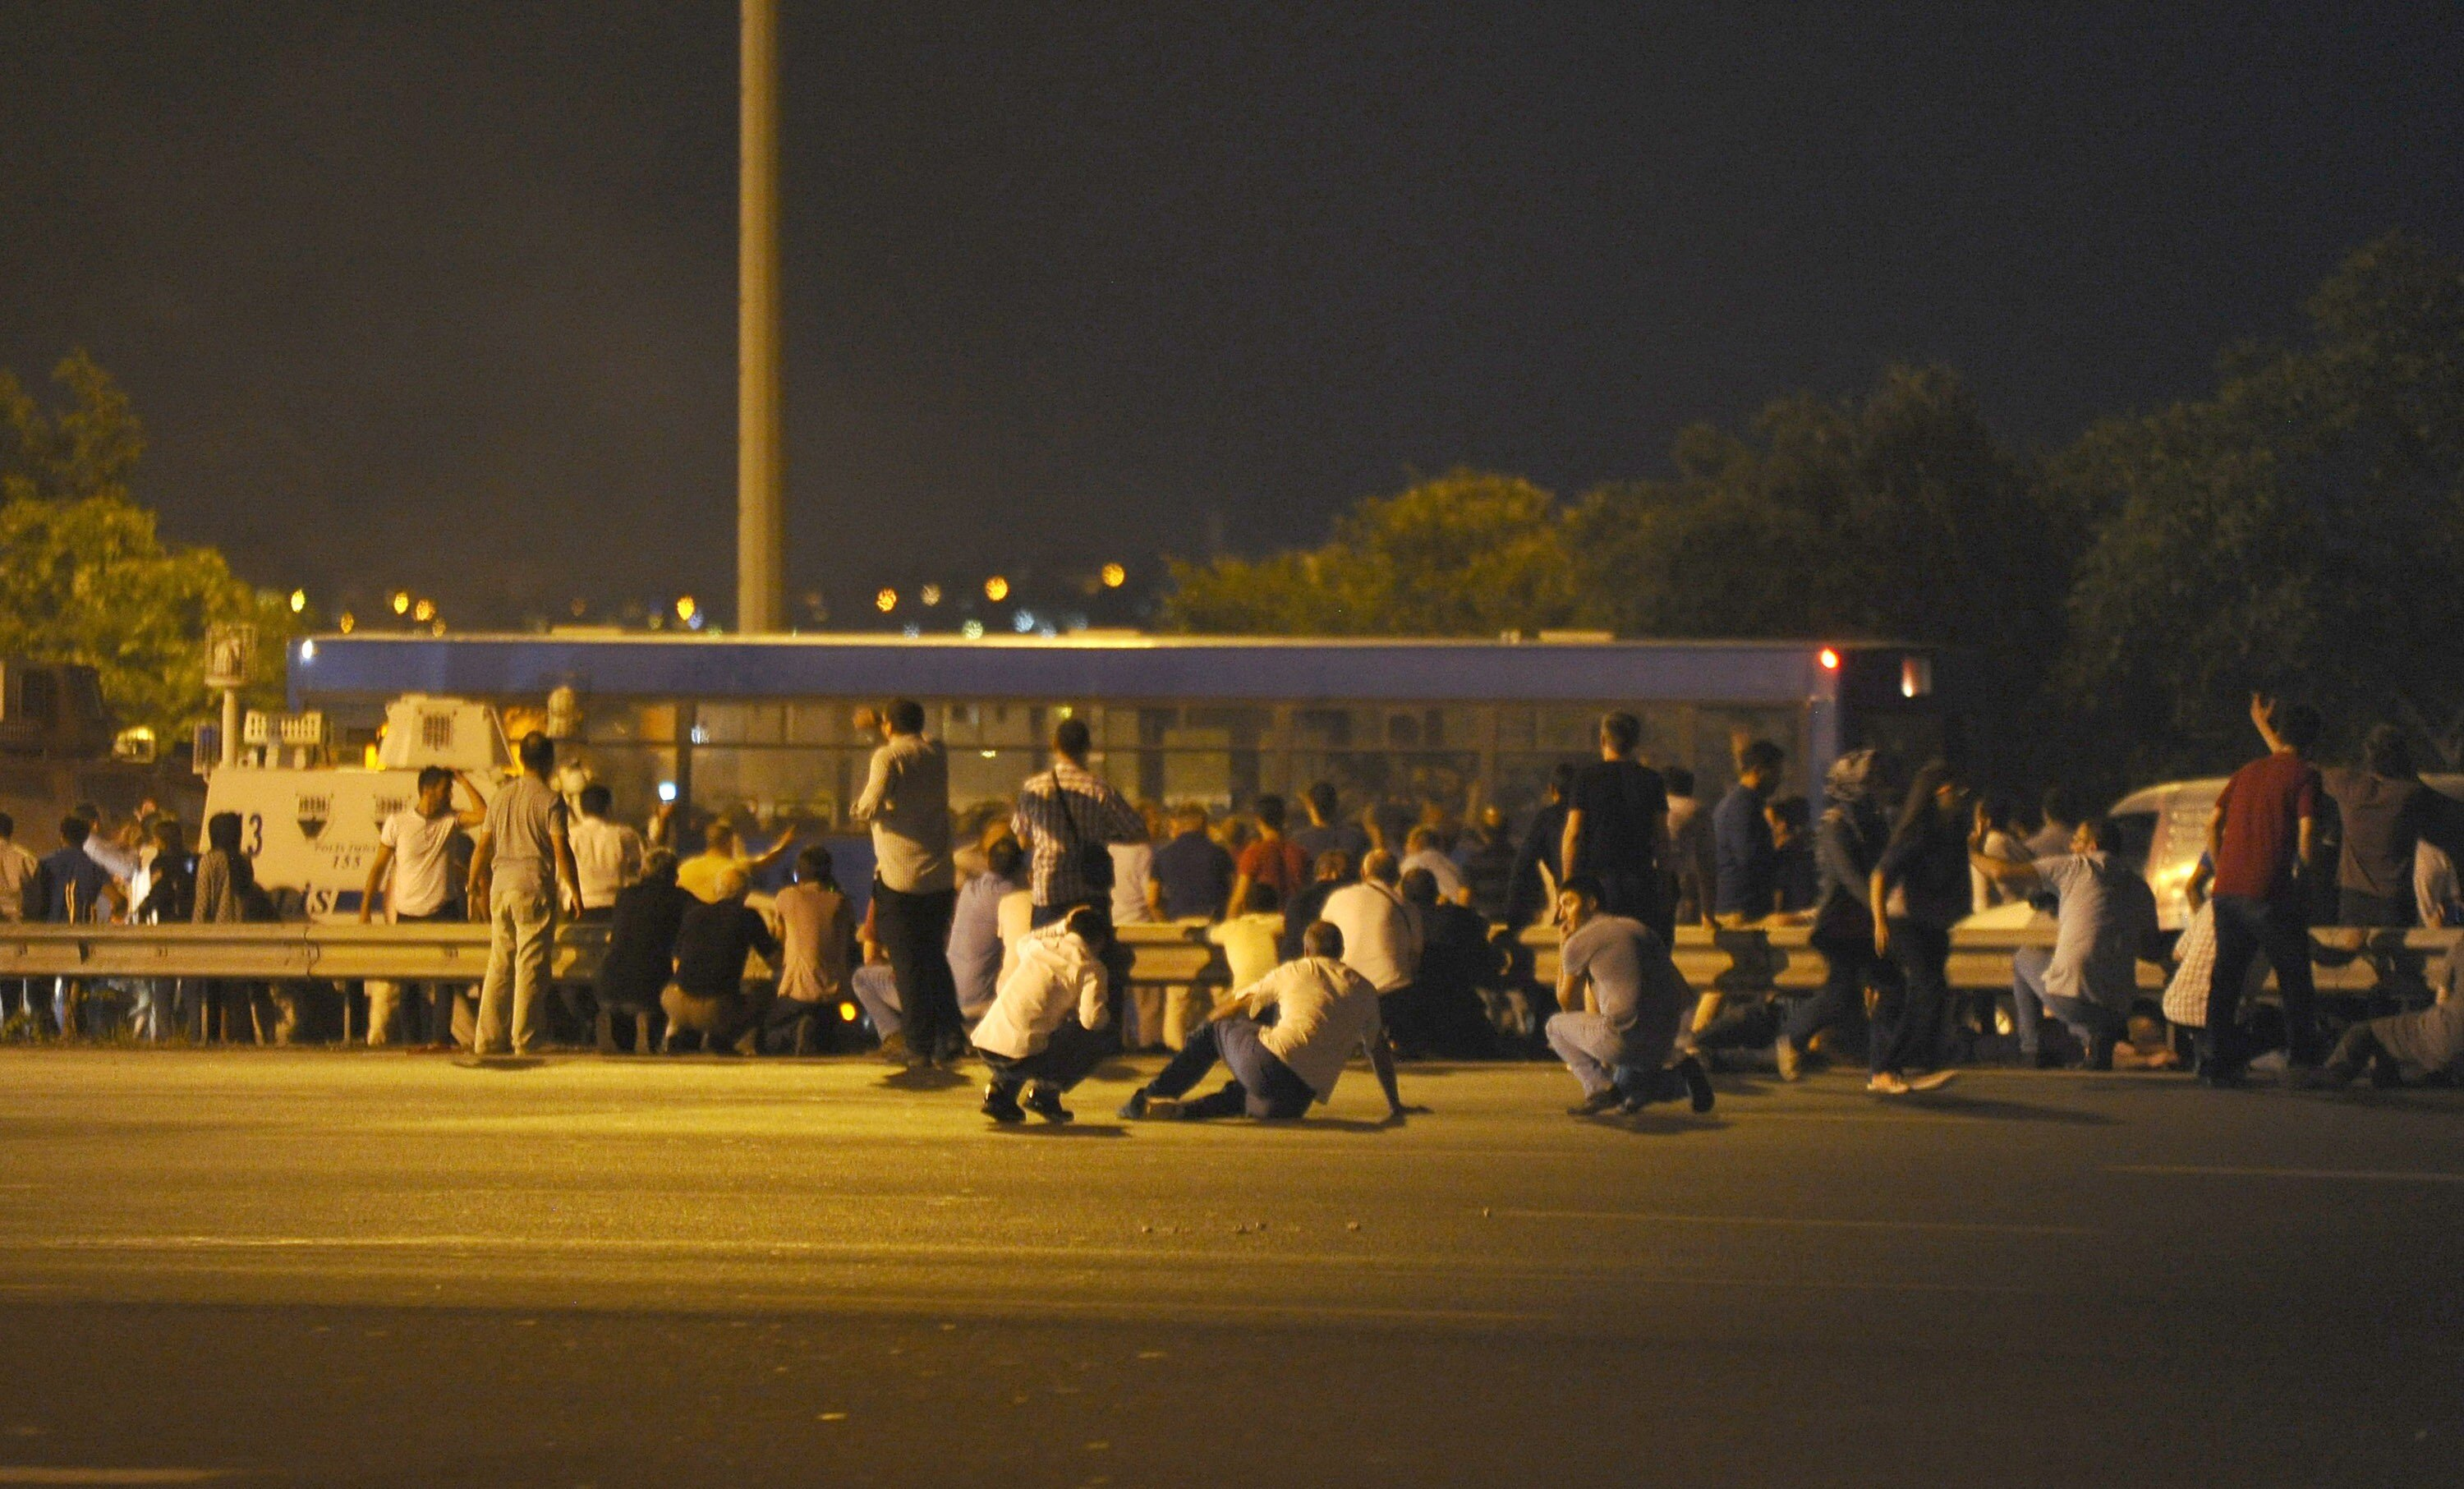 Civilians stopped a bus full of soldiers right before entering the bridge.